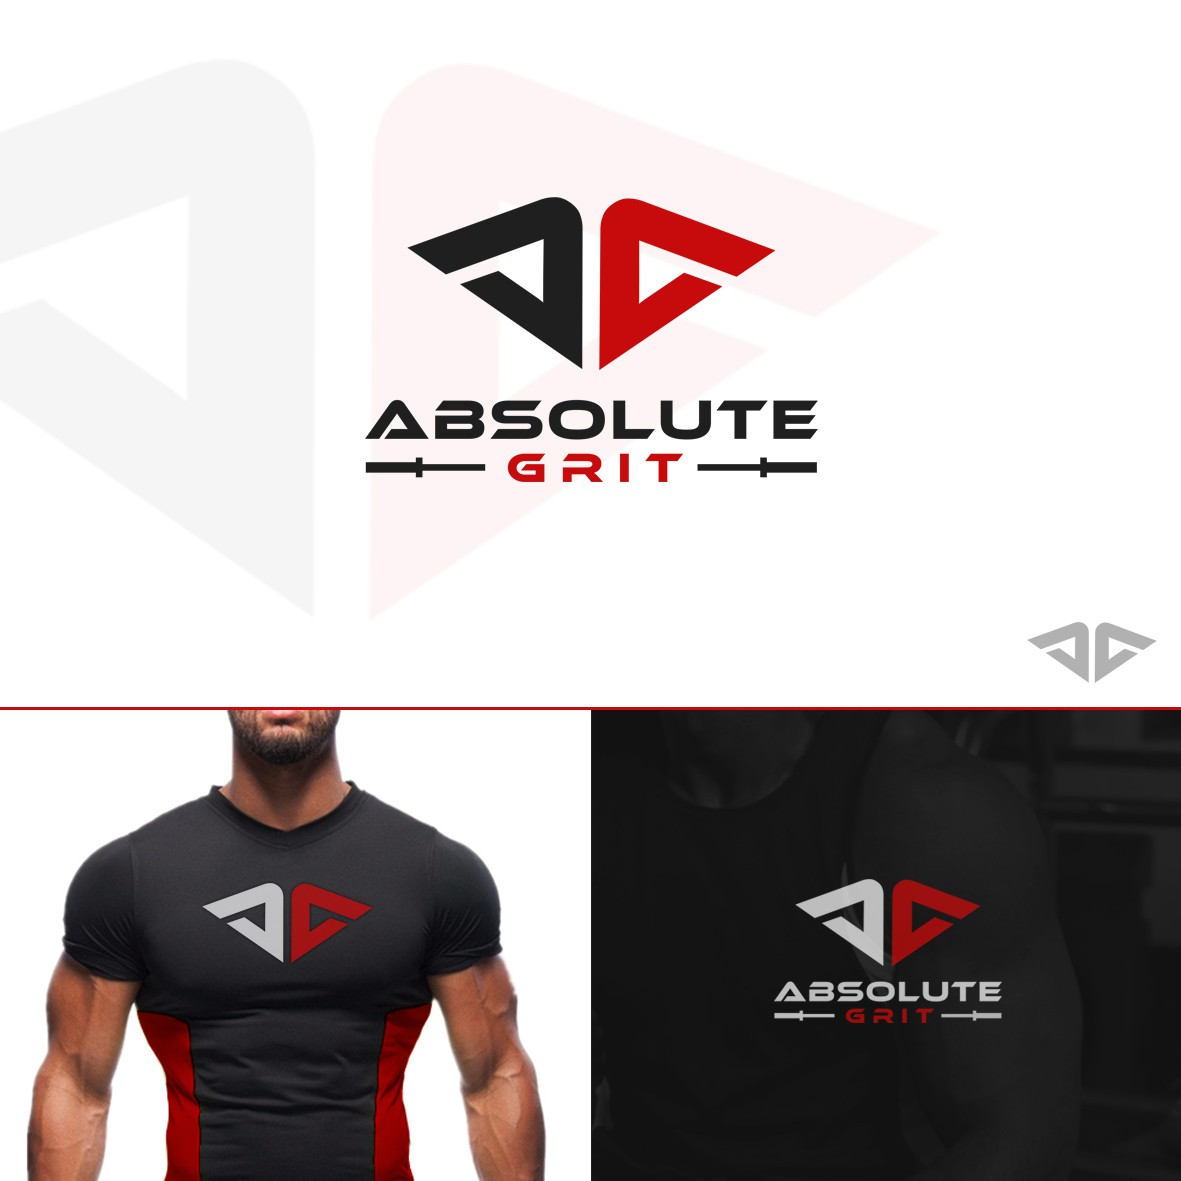 Absolute Grit needs a powerful logo!